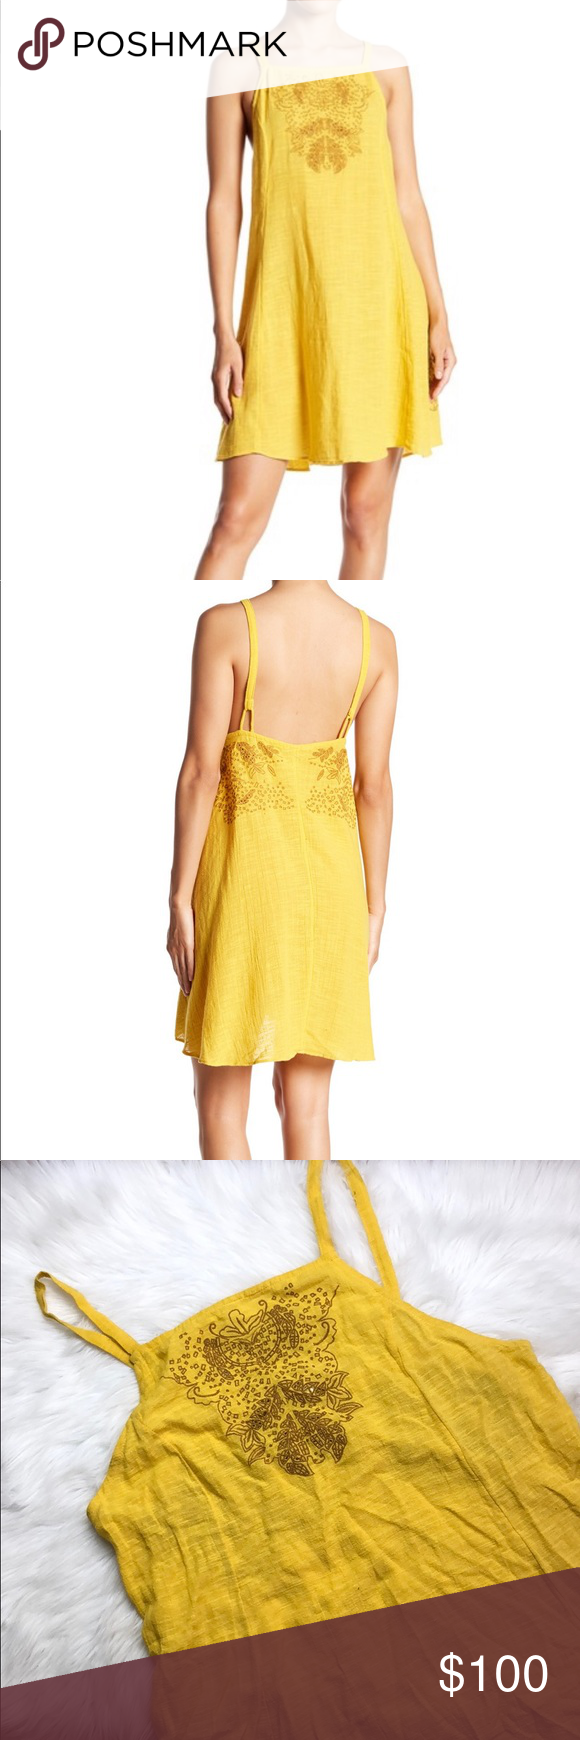 94561502d489c FREE PEOPLE TULUM CUT WORK EMBROIDERED SLIP DRESS Contemporary, cute and  brand new! No